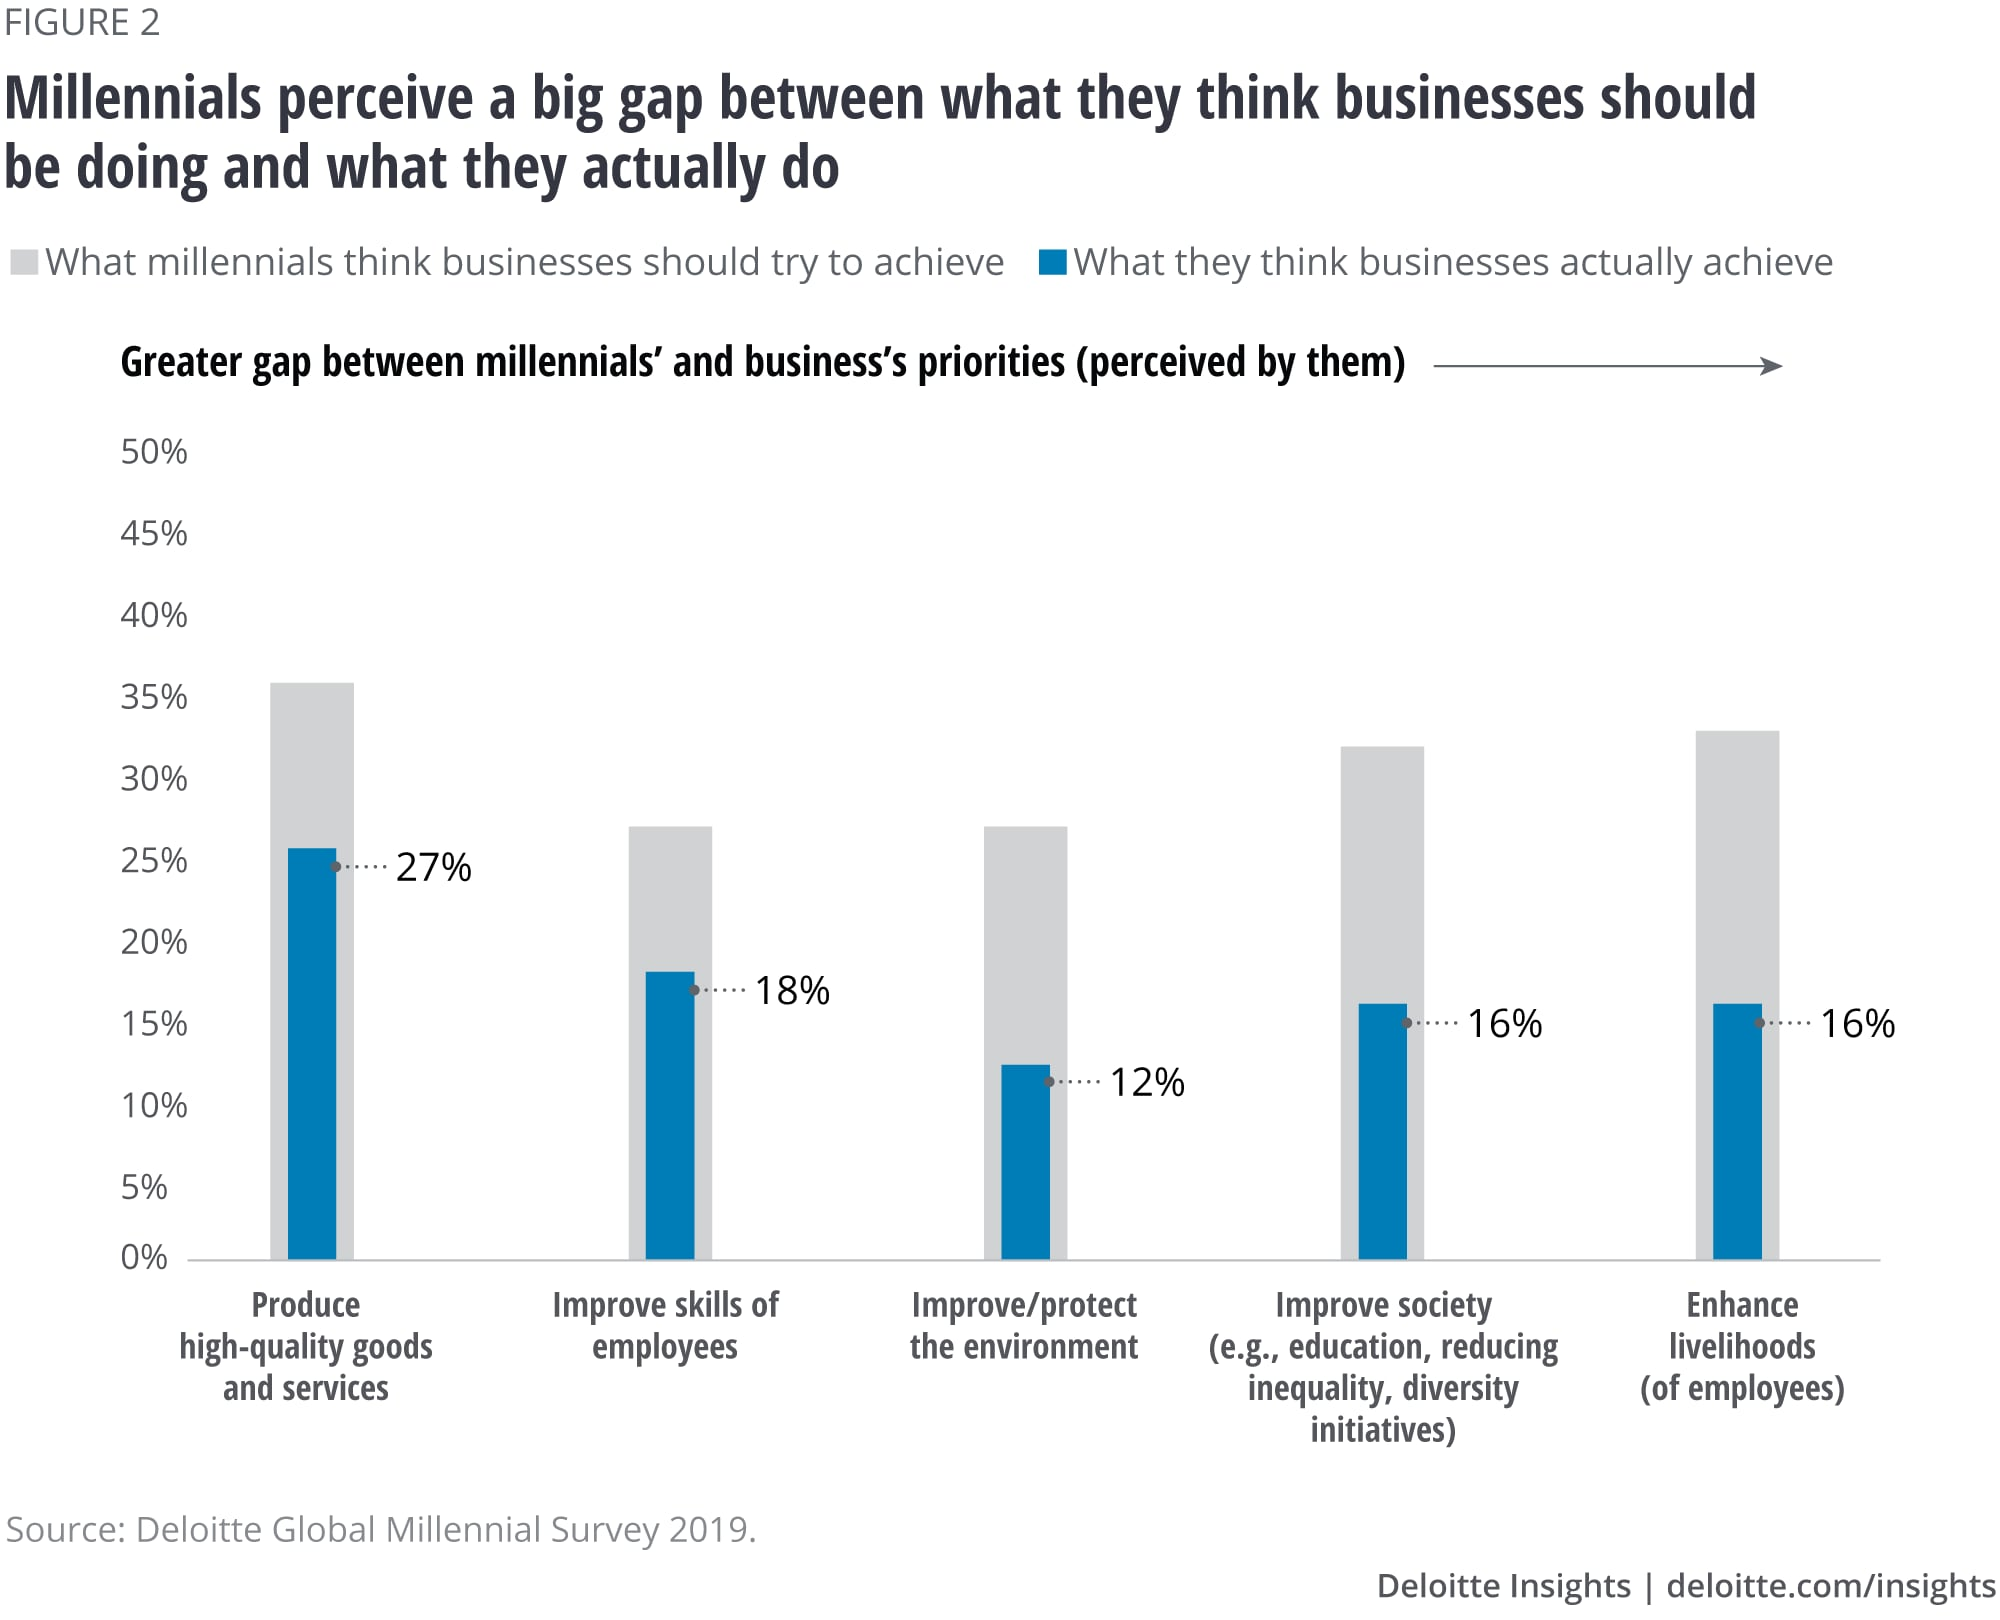 Millennials perceive a big gap between what they think businesses should be doing and what they actually do